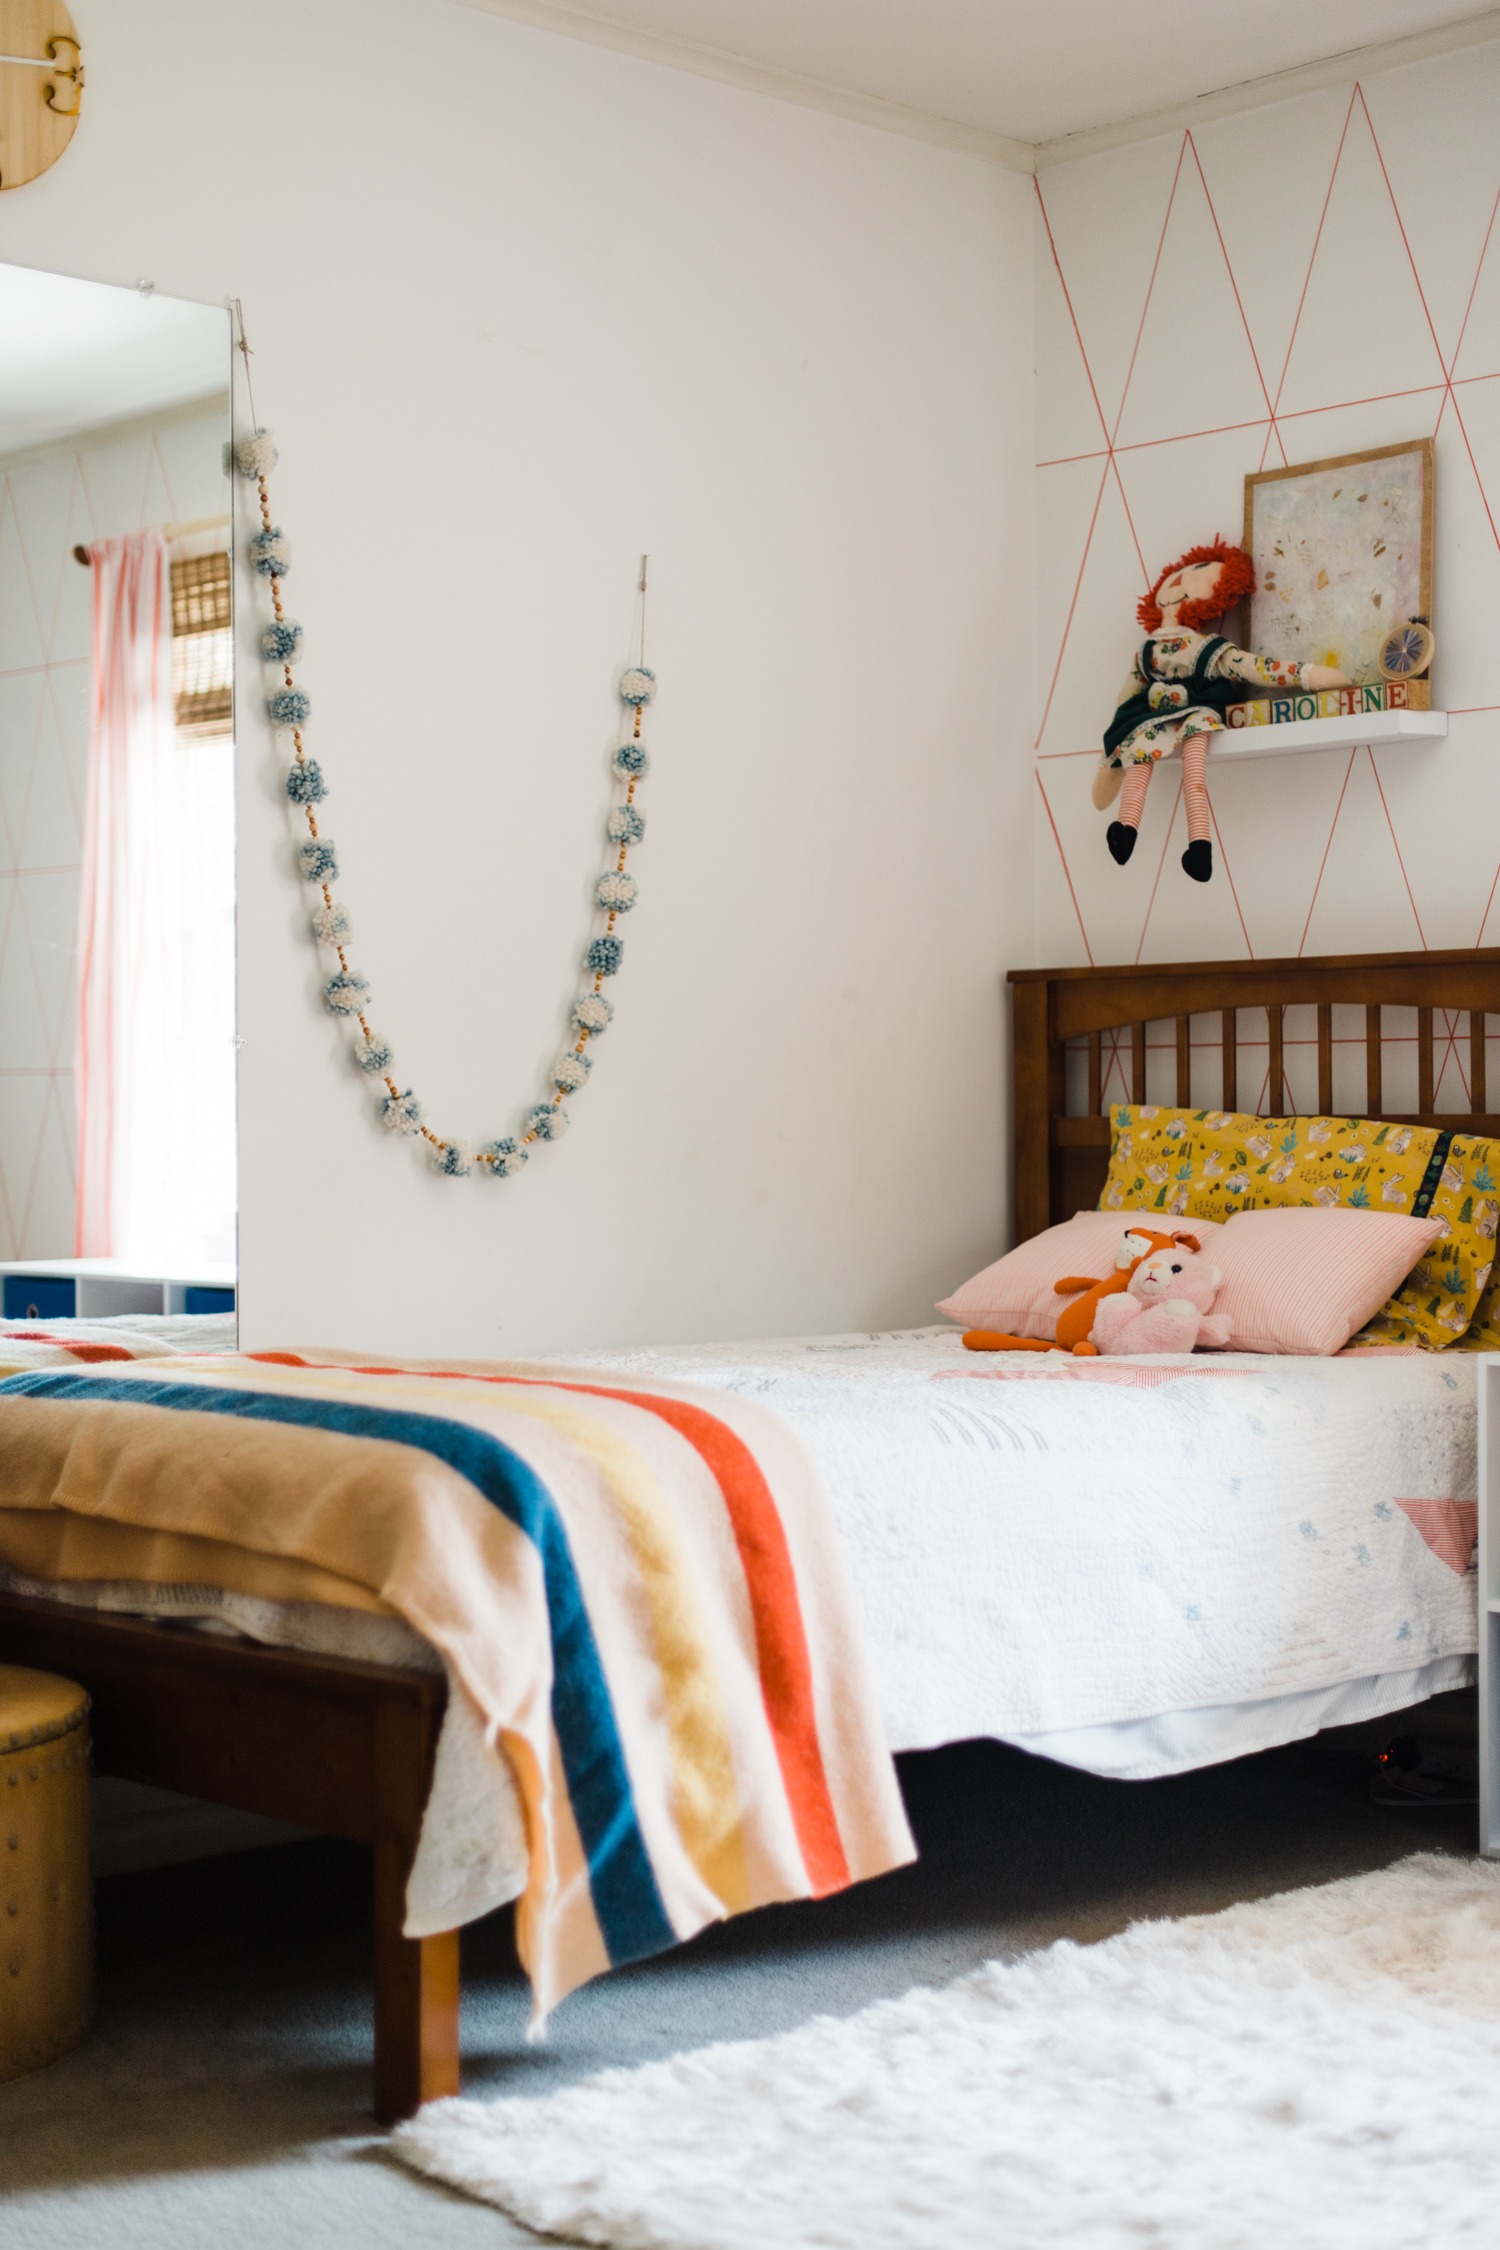 The vintage Hudson Bay blanket was the first purchase I made for Caroline's room back in 2014.